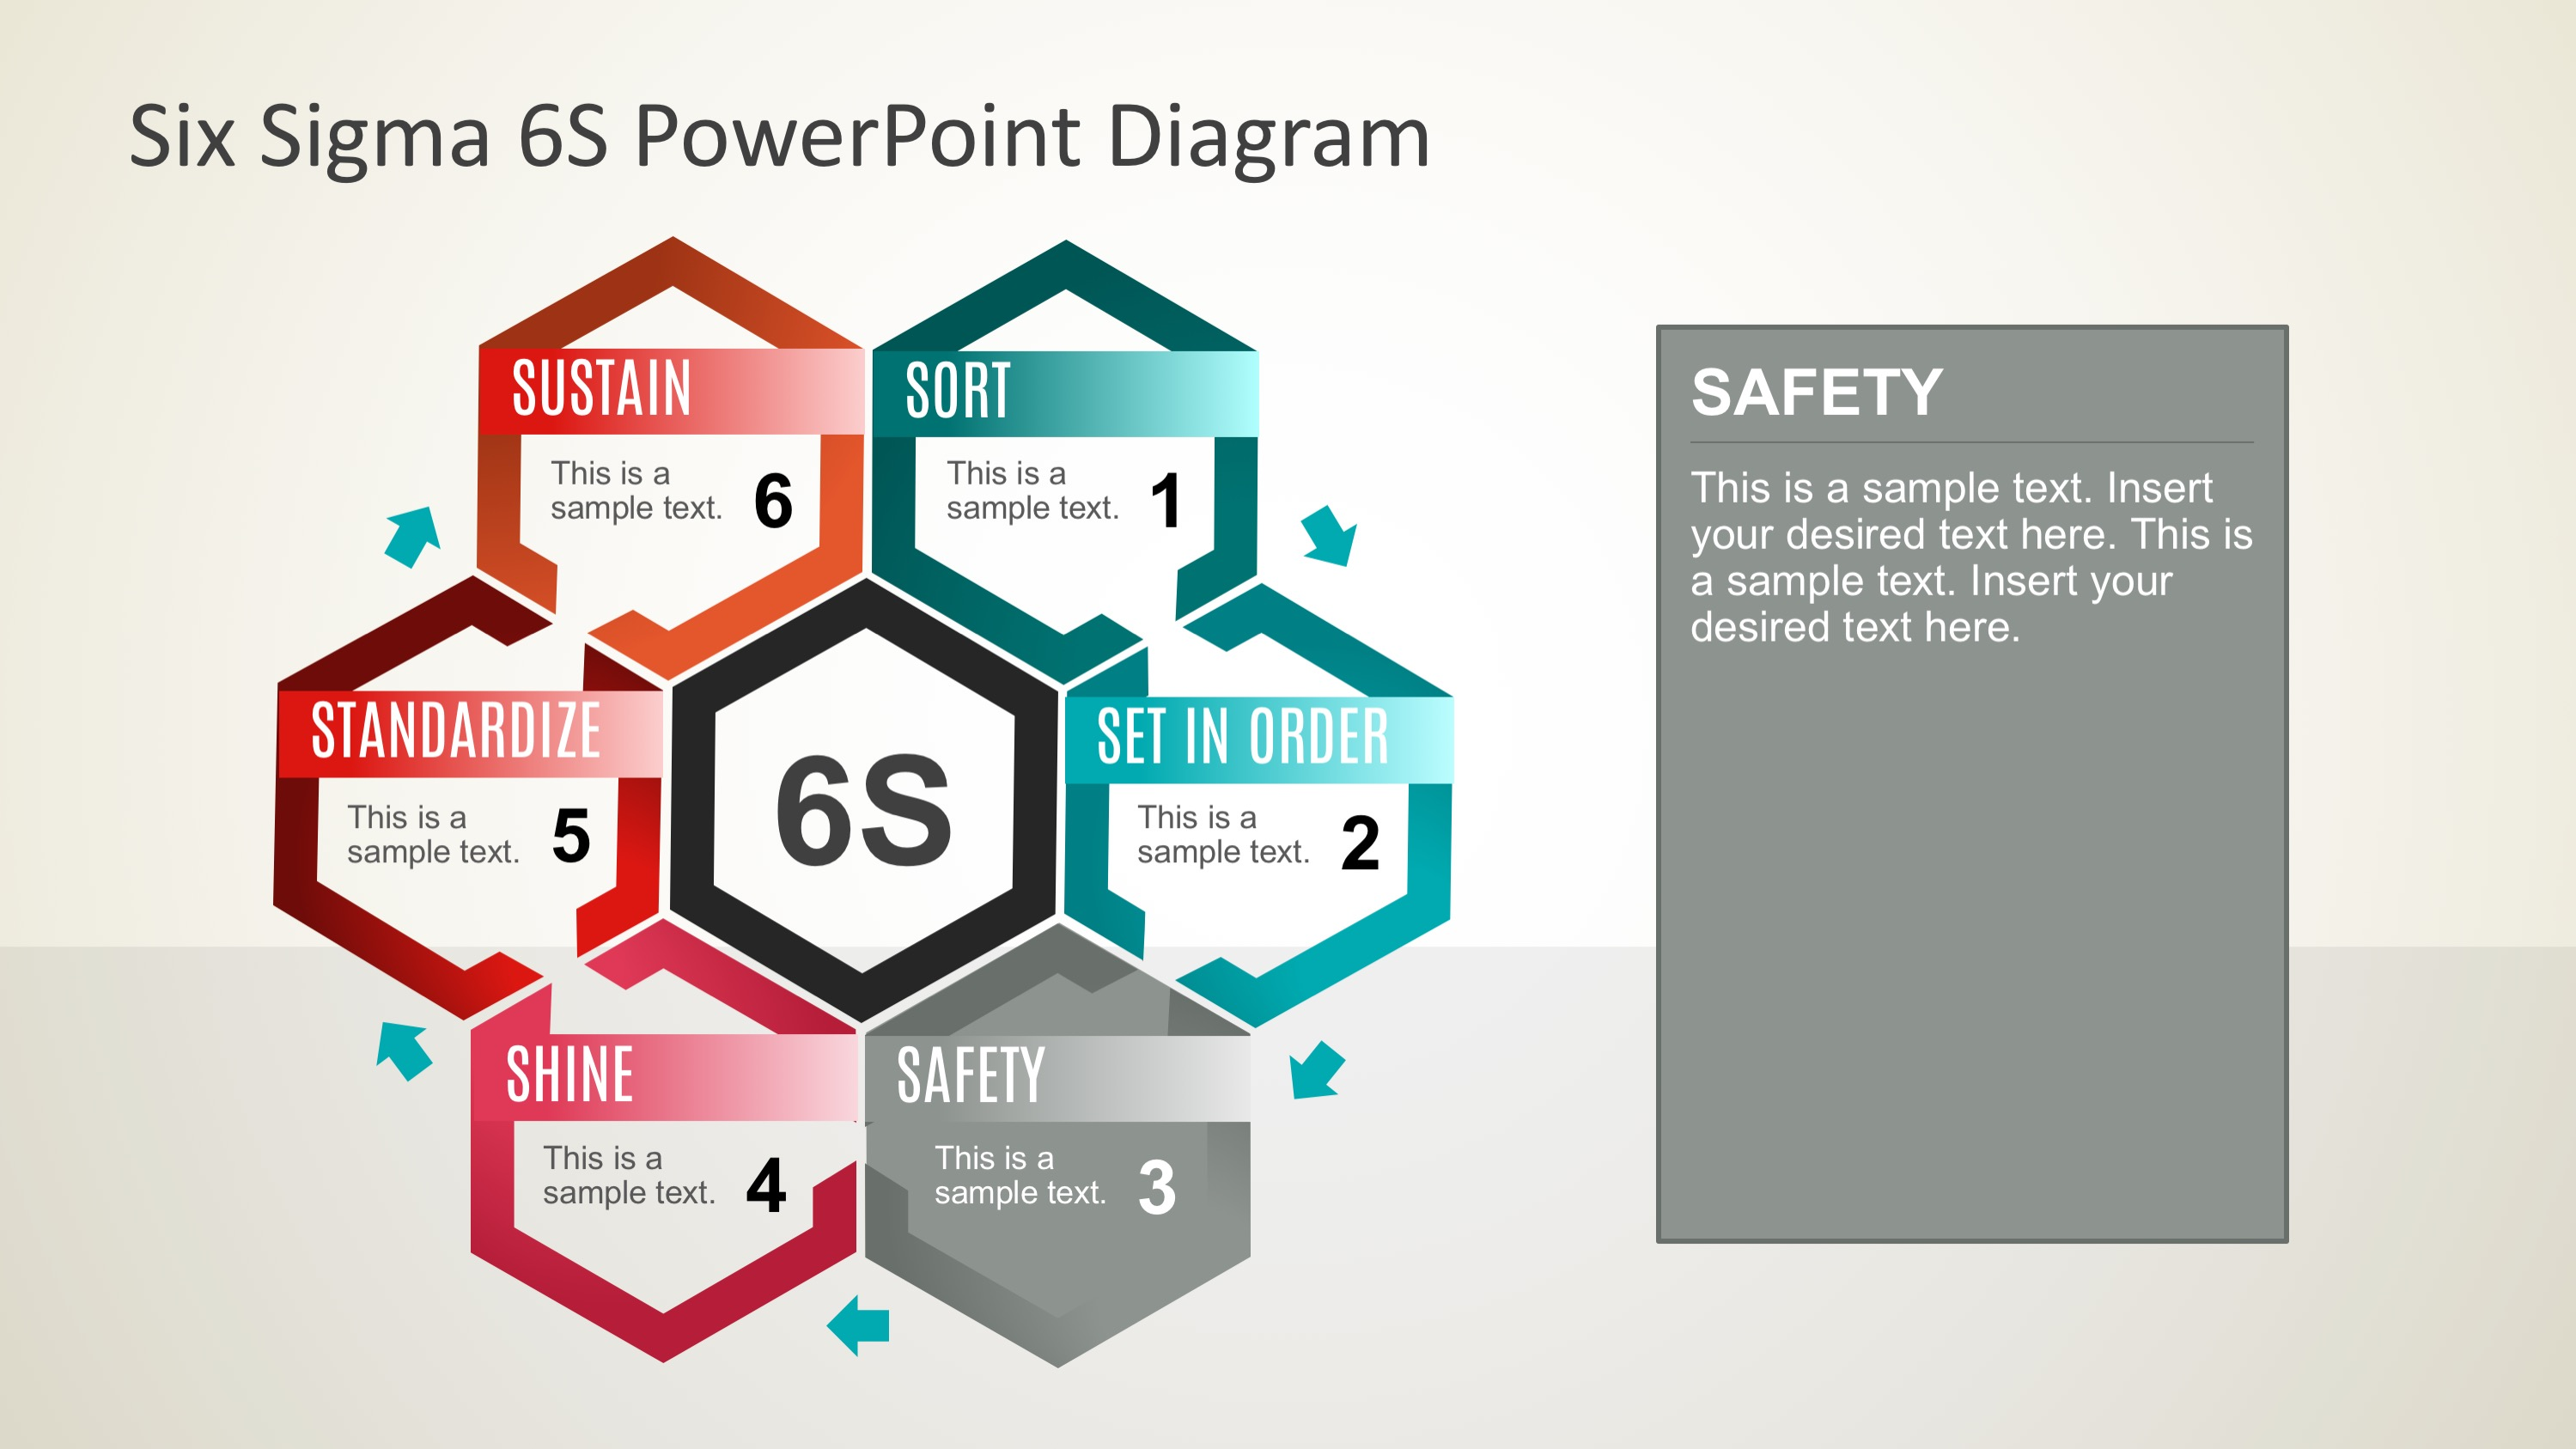 Six Sigma Diagram Template in PowerPoint